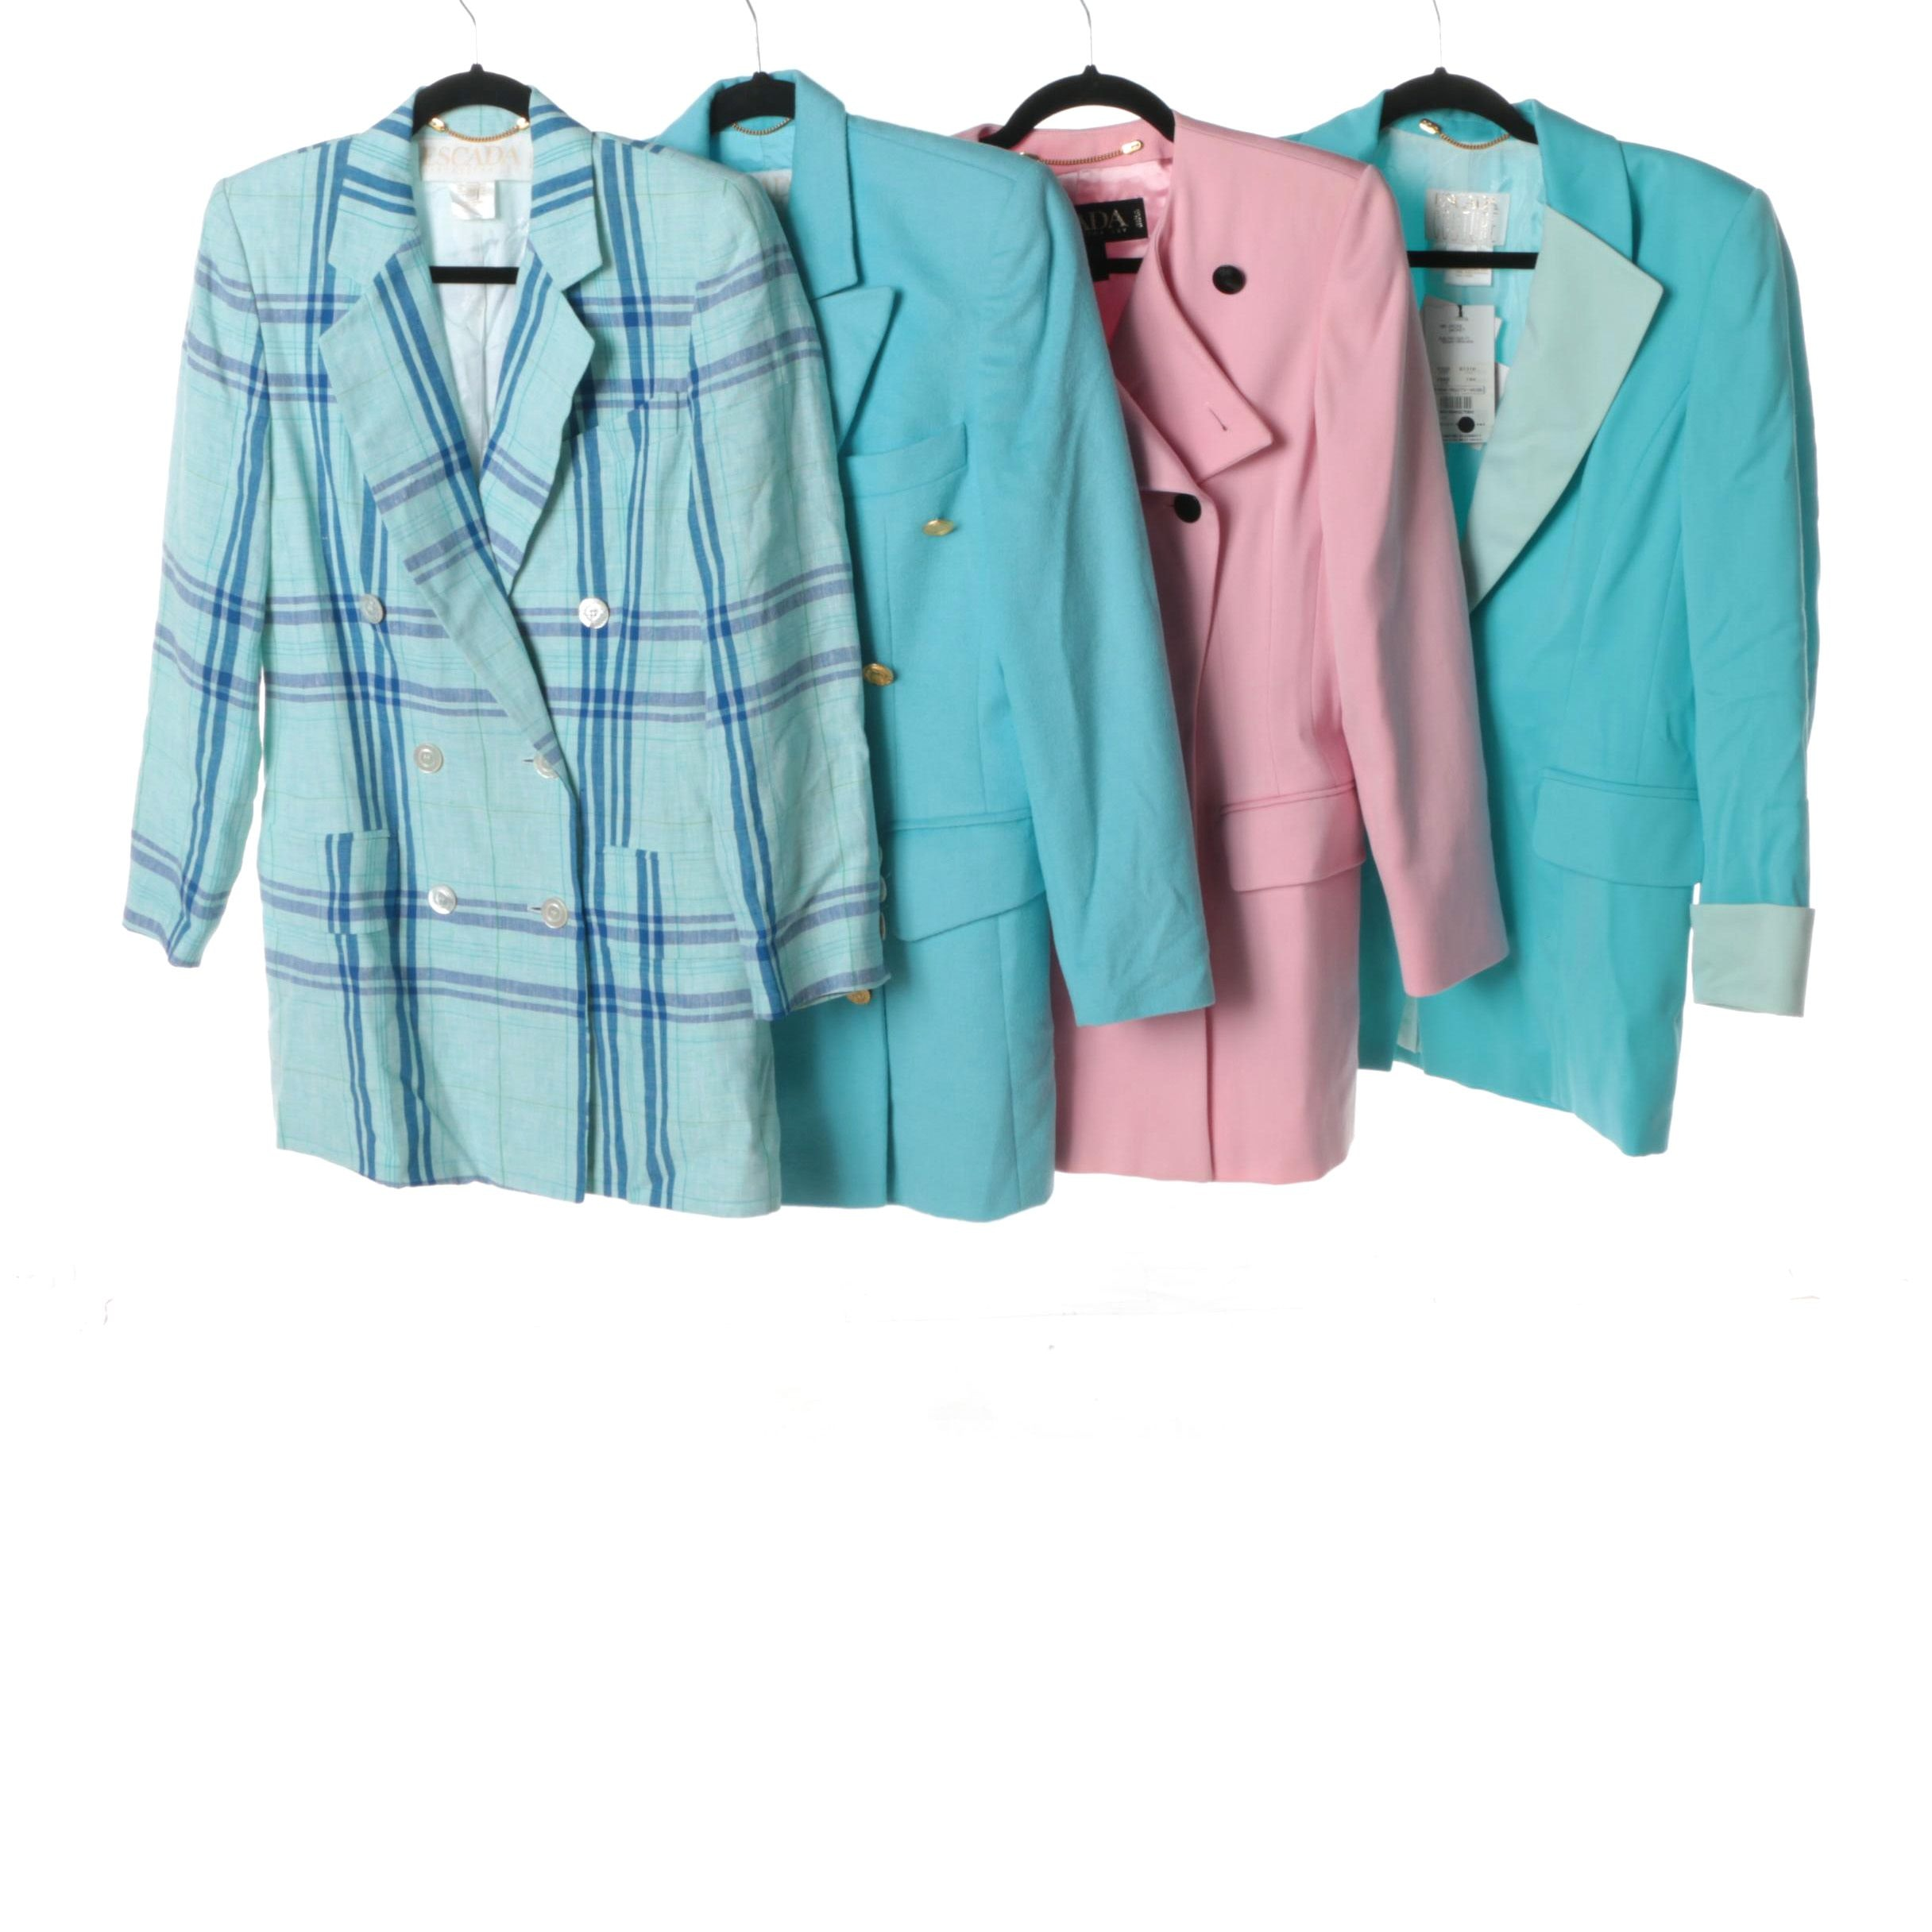 Women's Escada Brand Wool and Linen Jackets